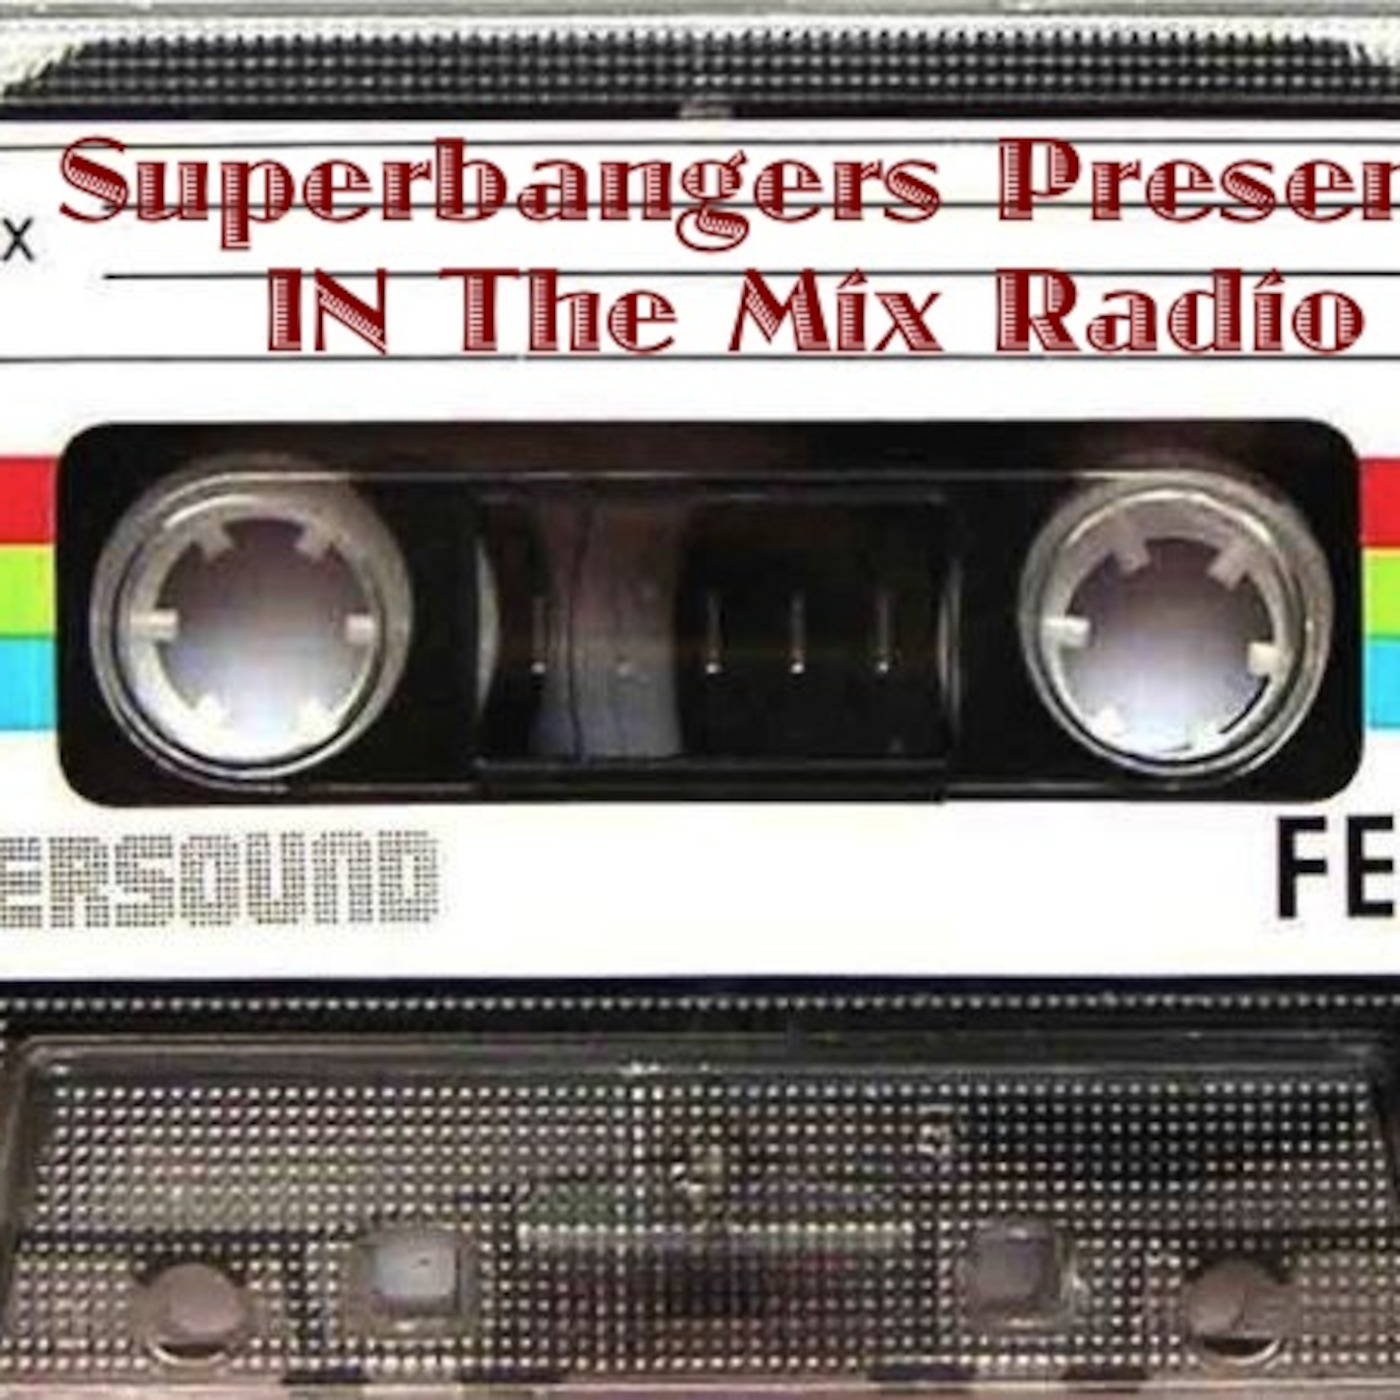 Superbangers' Podcast